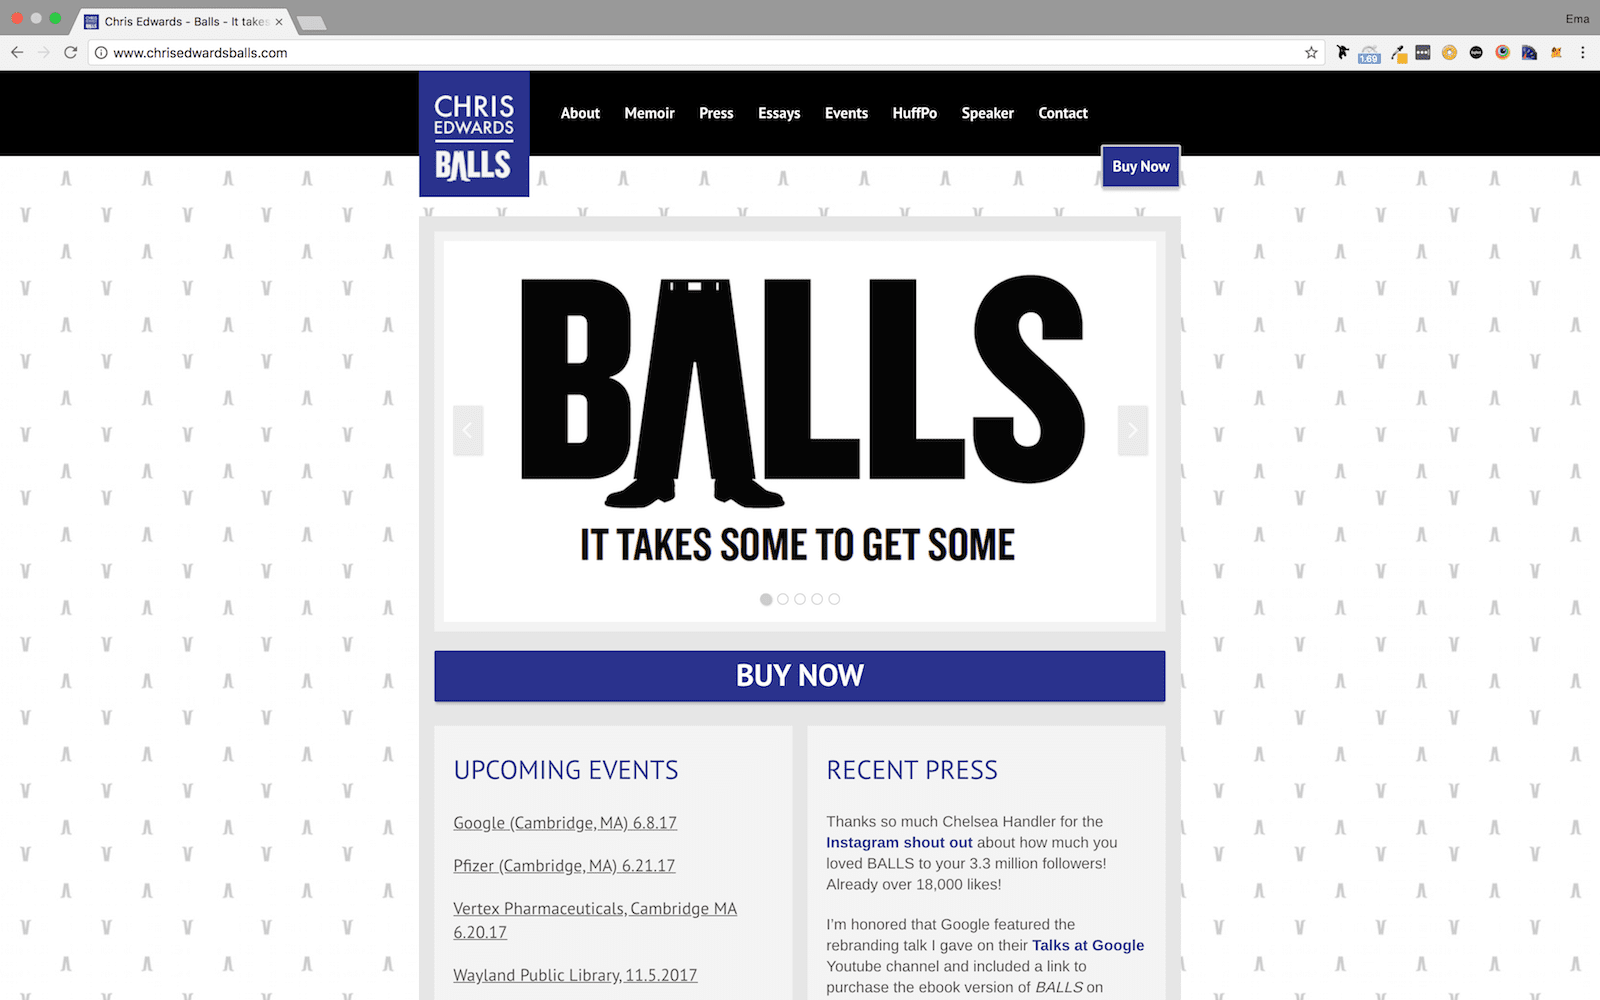 Chris Edwards Balls Homepage